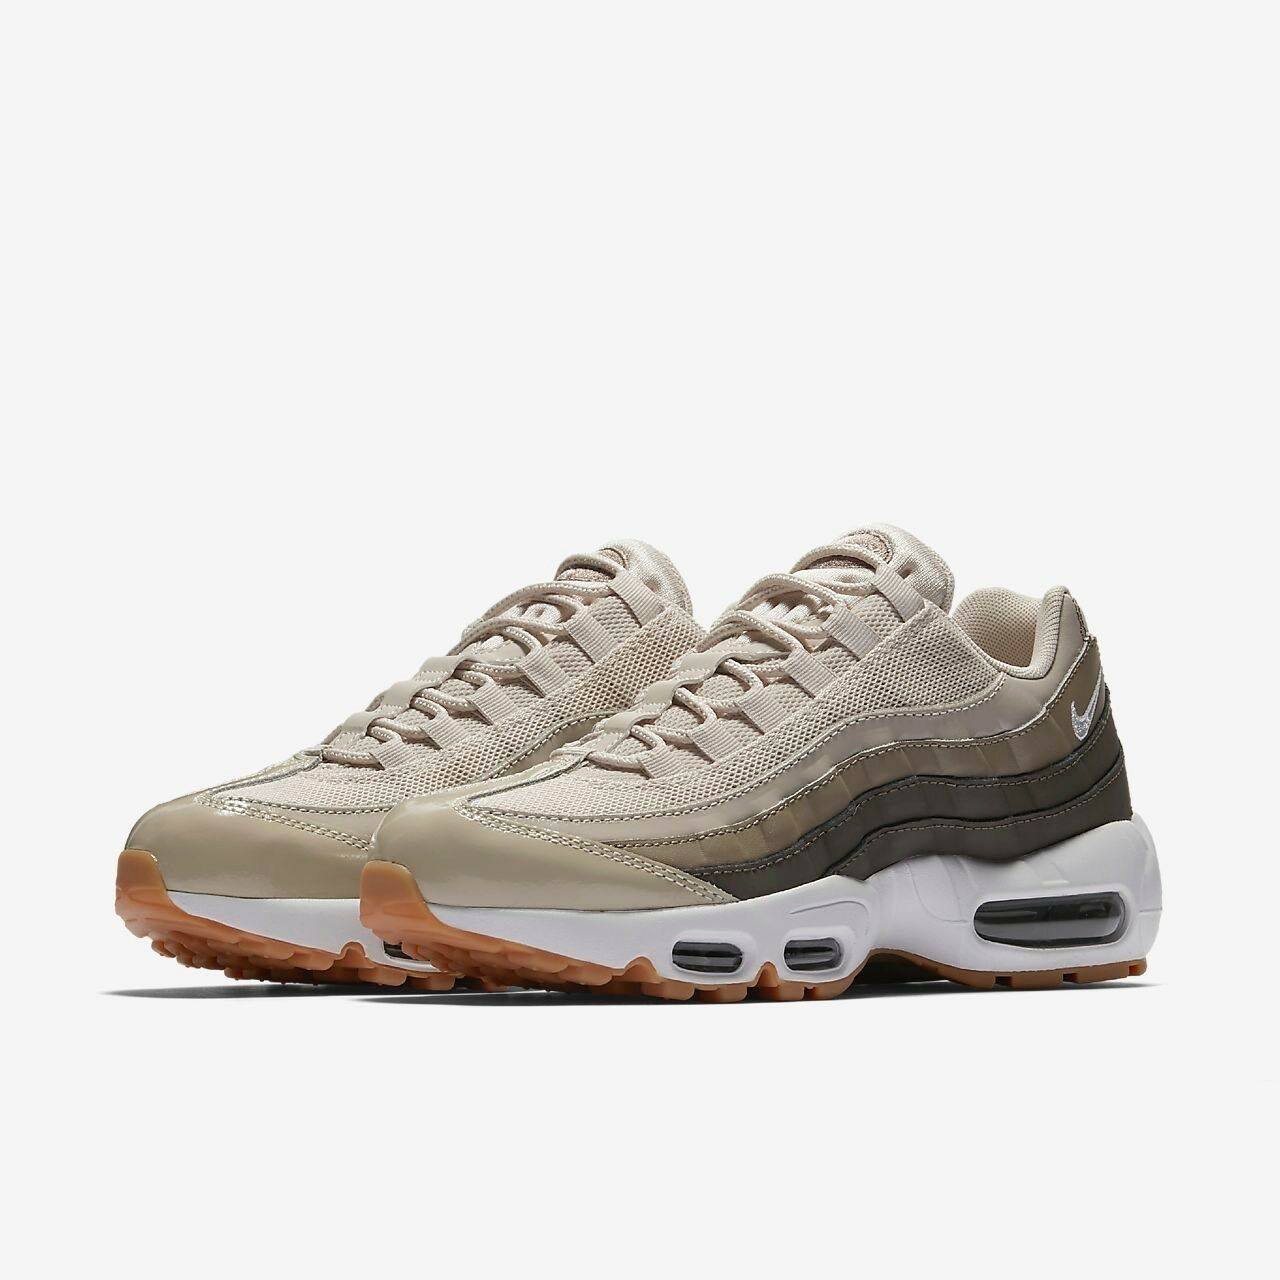 NIKE AIR MAX 95 OG 307960011 307960011 307960011 KHAKI GREY  WOMEN'S RUNNING SHOES 100% AUTHENTIC 4cef13